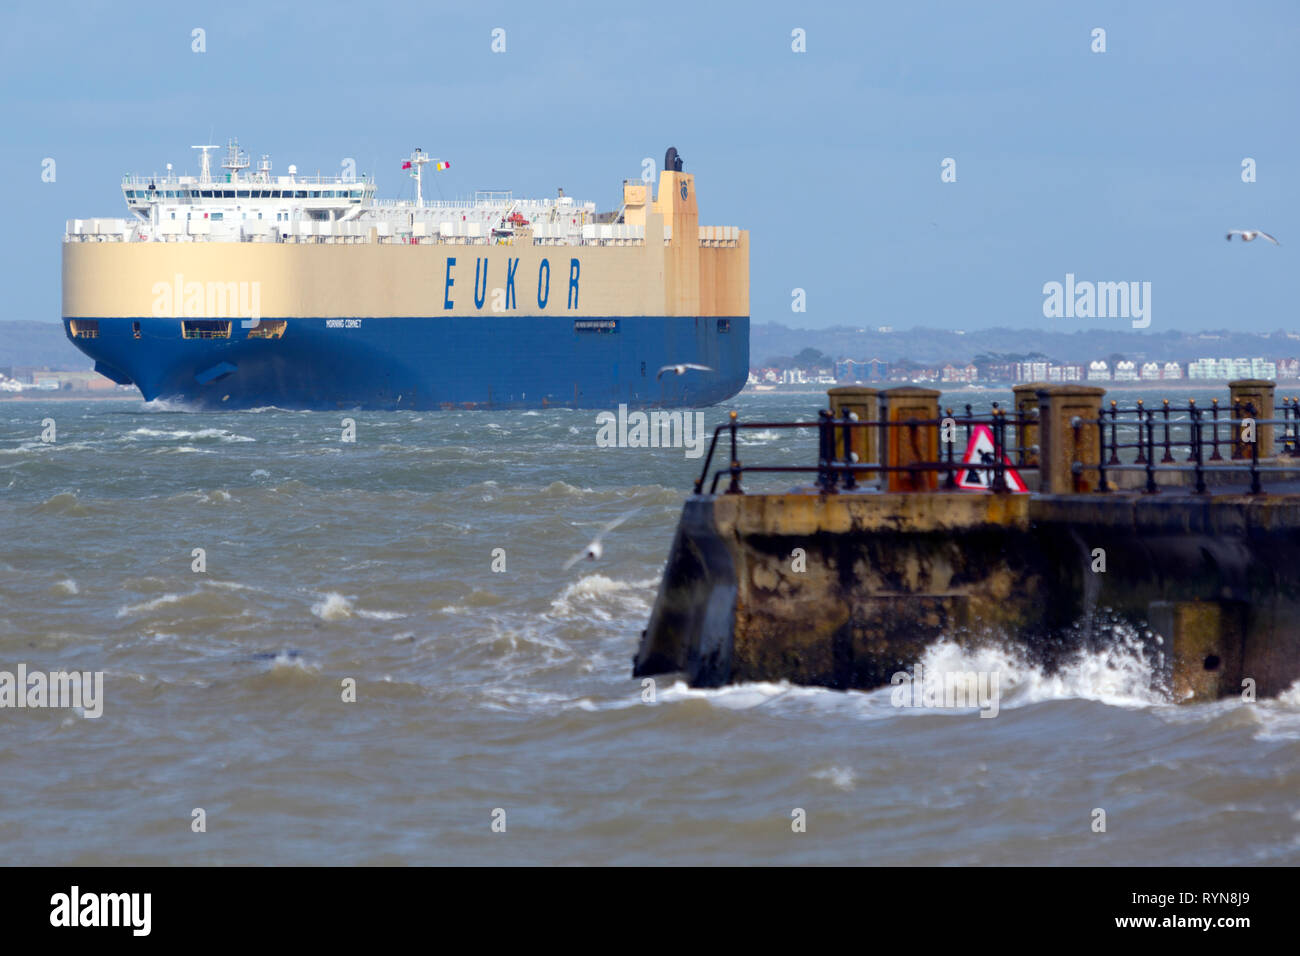 Car Carrier, Morning Cornet, reistered, Monrovia, The Solent, Fawley,Oil,Refinery, Southampton, Cowes, Isle of Wight, Hampshire, England, UK, - Stock Image